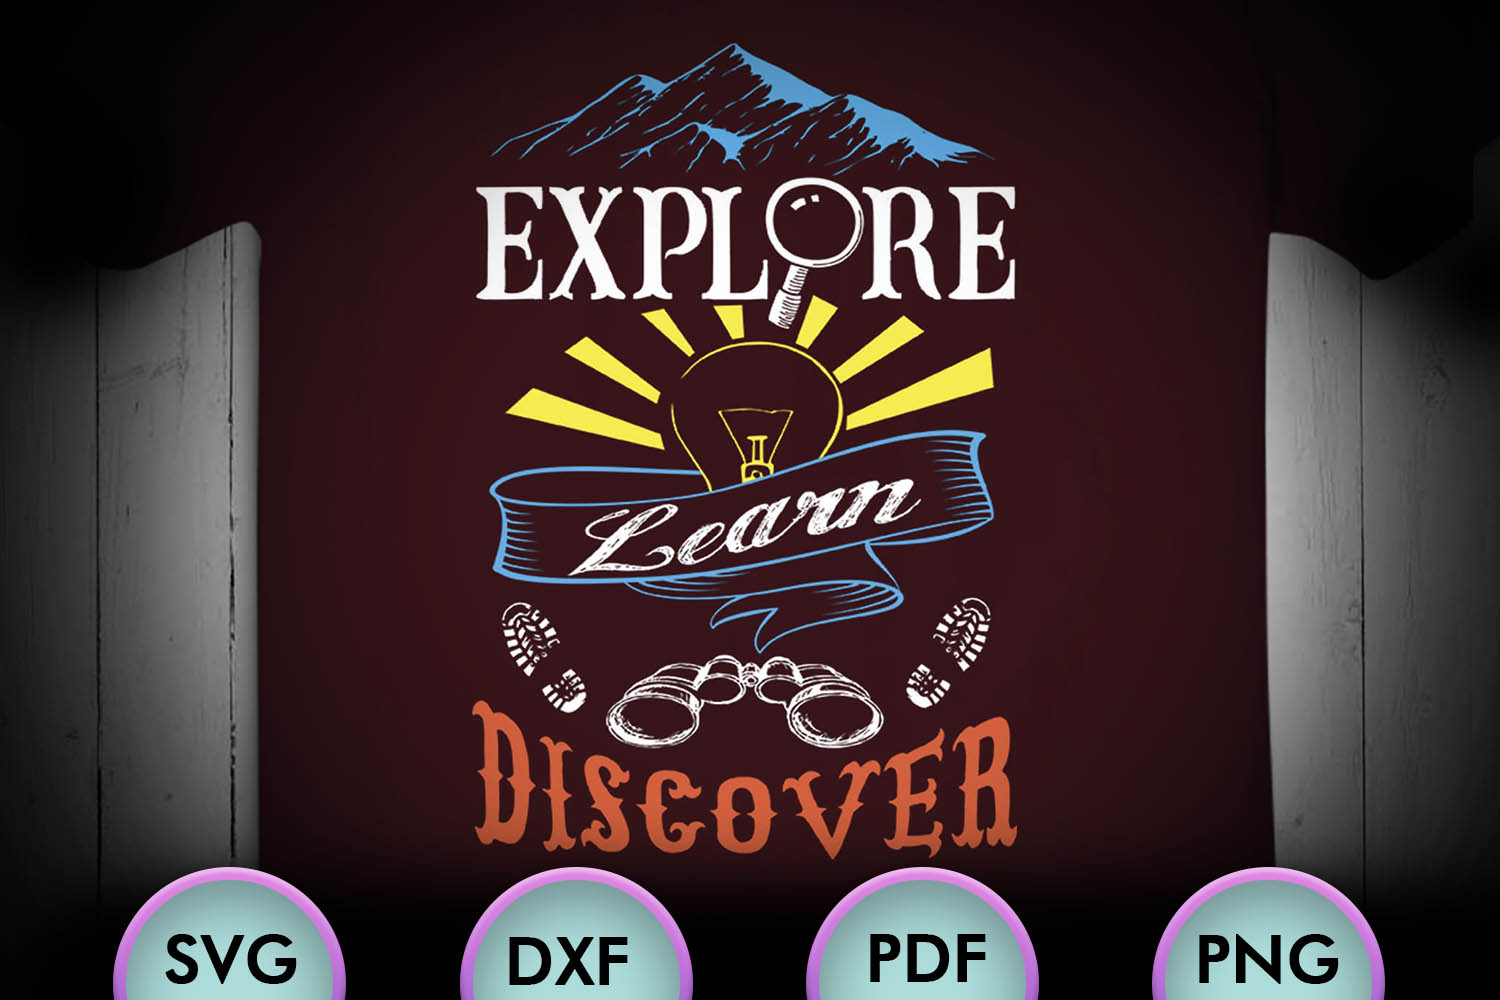 EXPLORE, LEARN, DISCOVER, Motivational Quote, svg Design example image 1